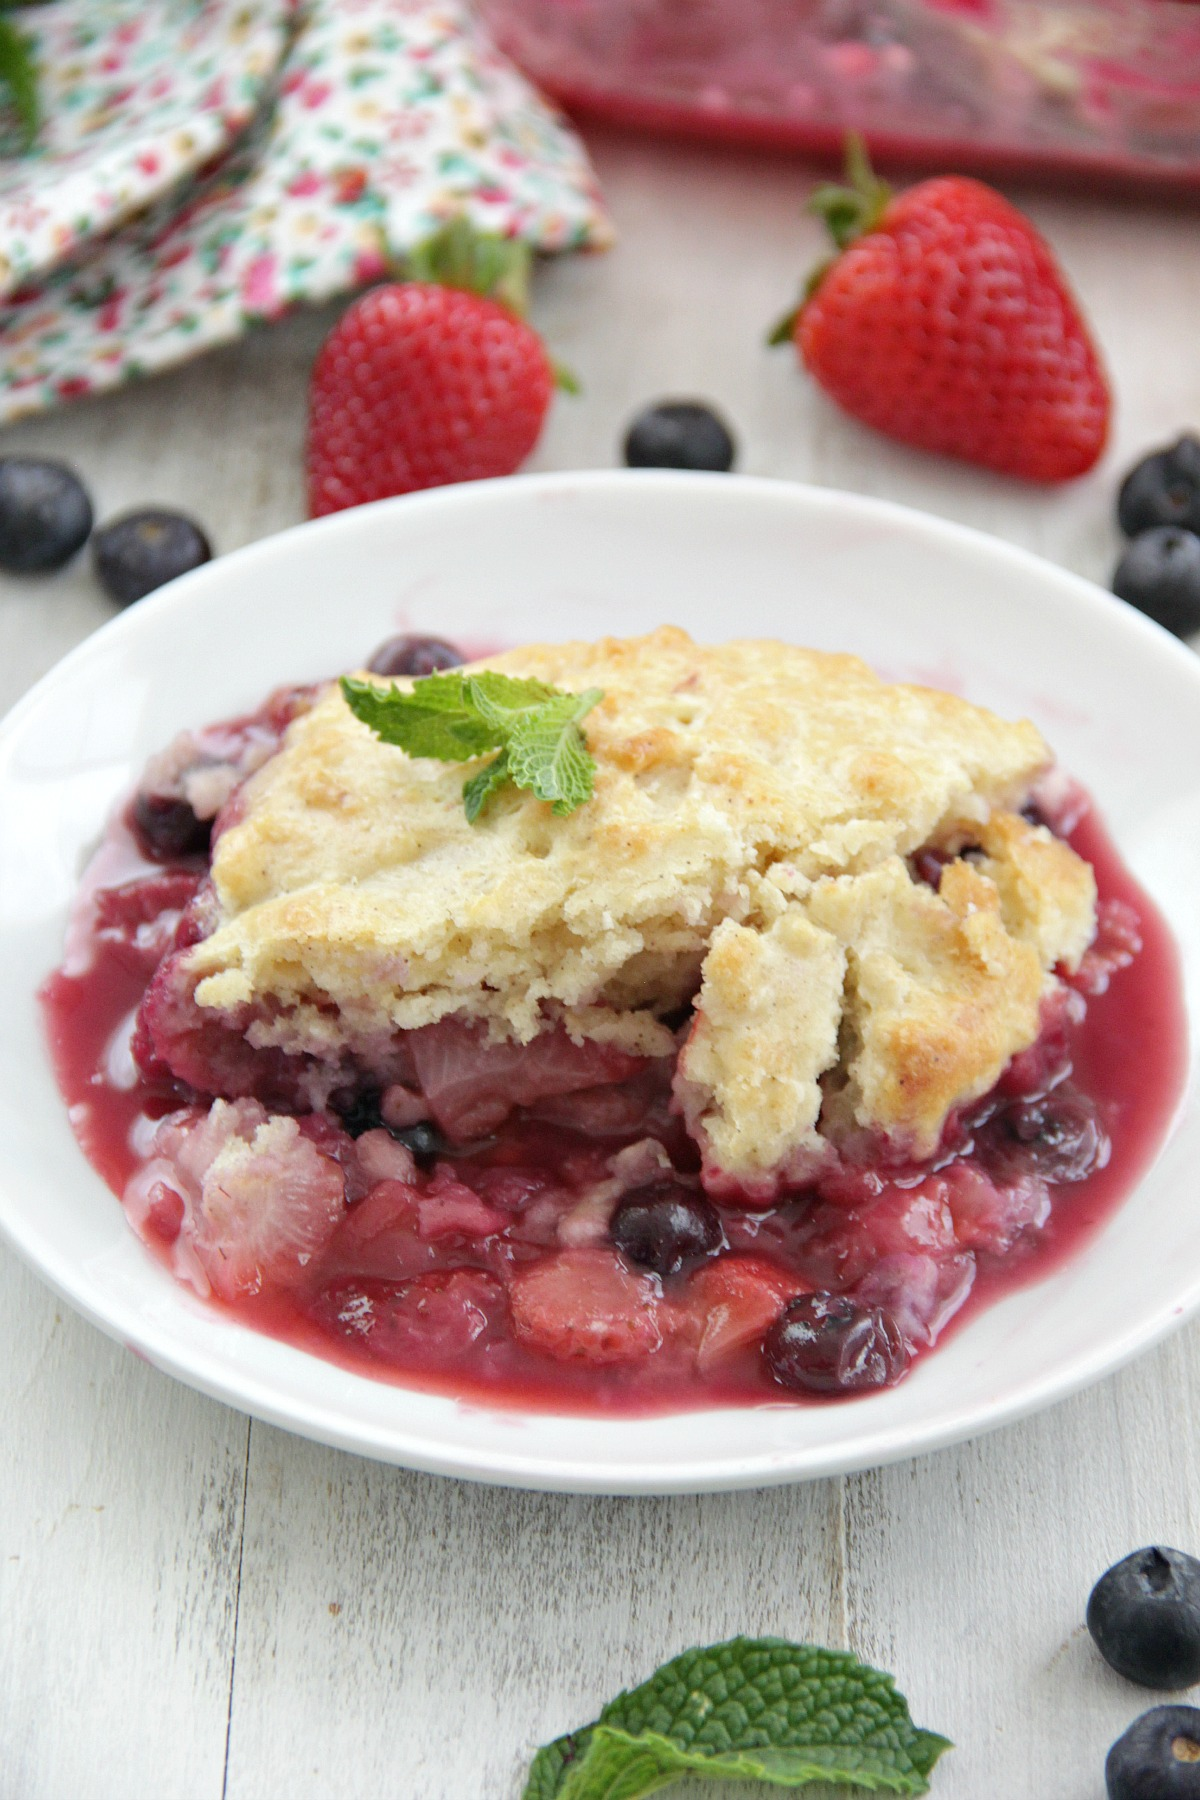 Strawberry Blueberry Cobbler